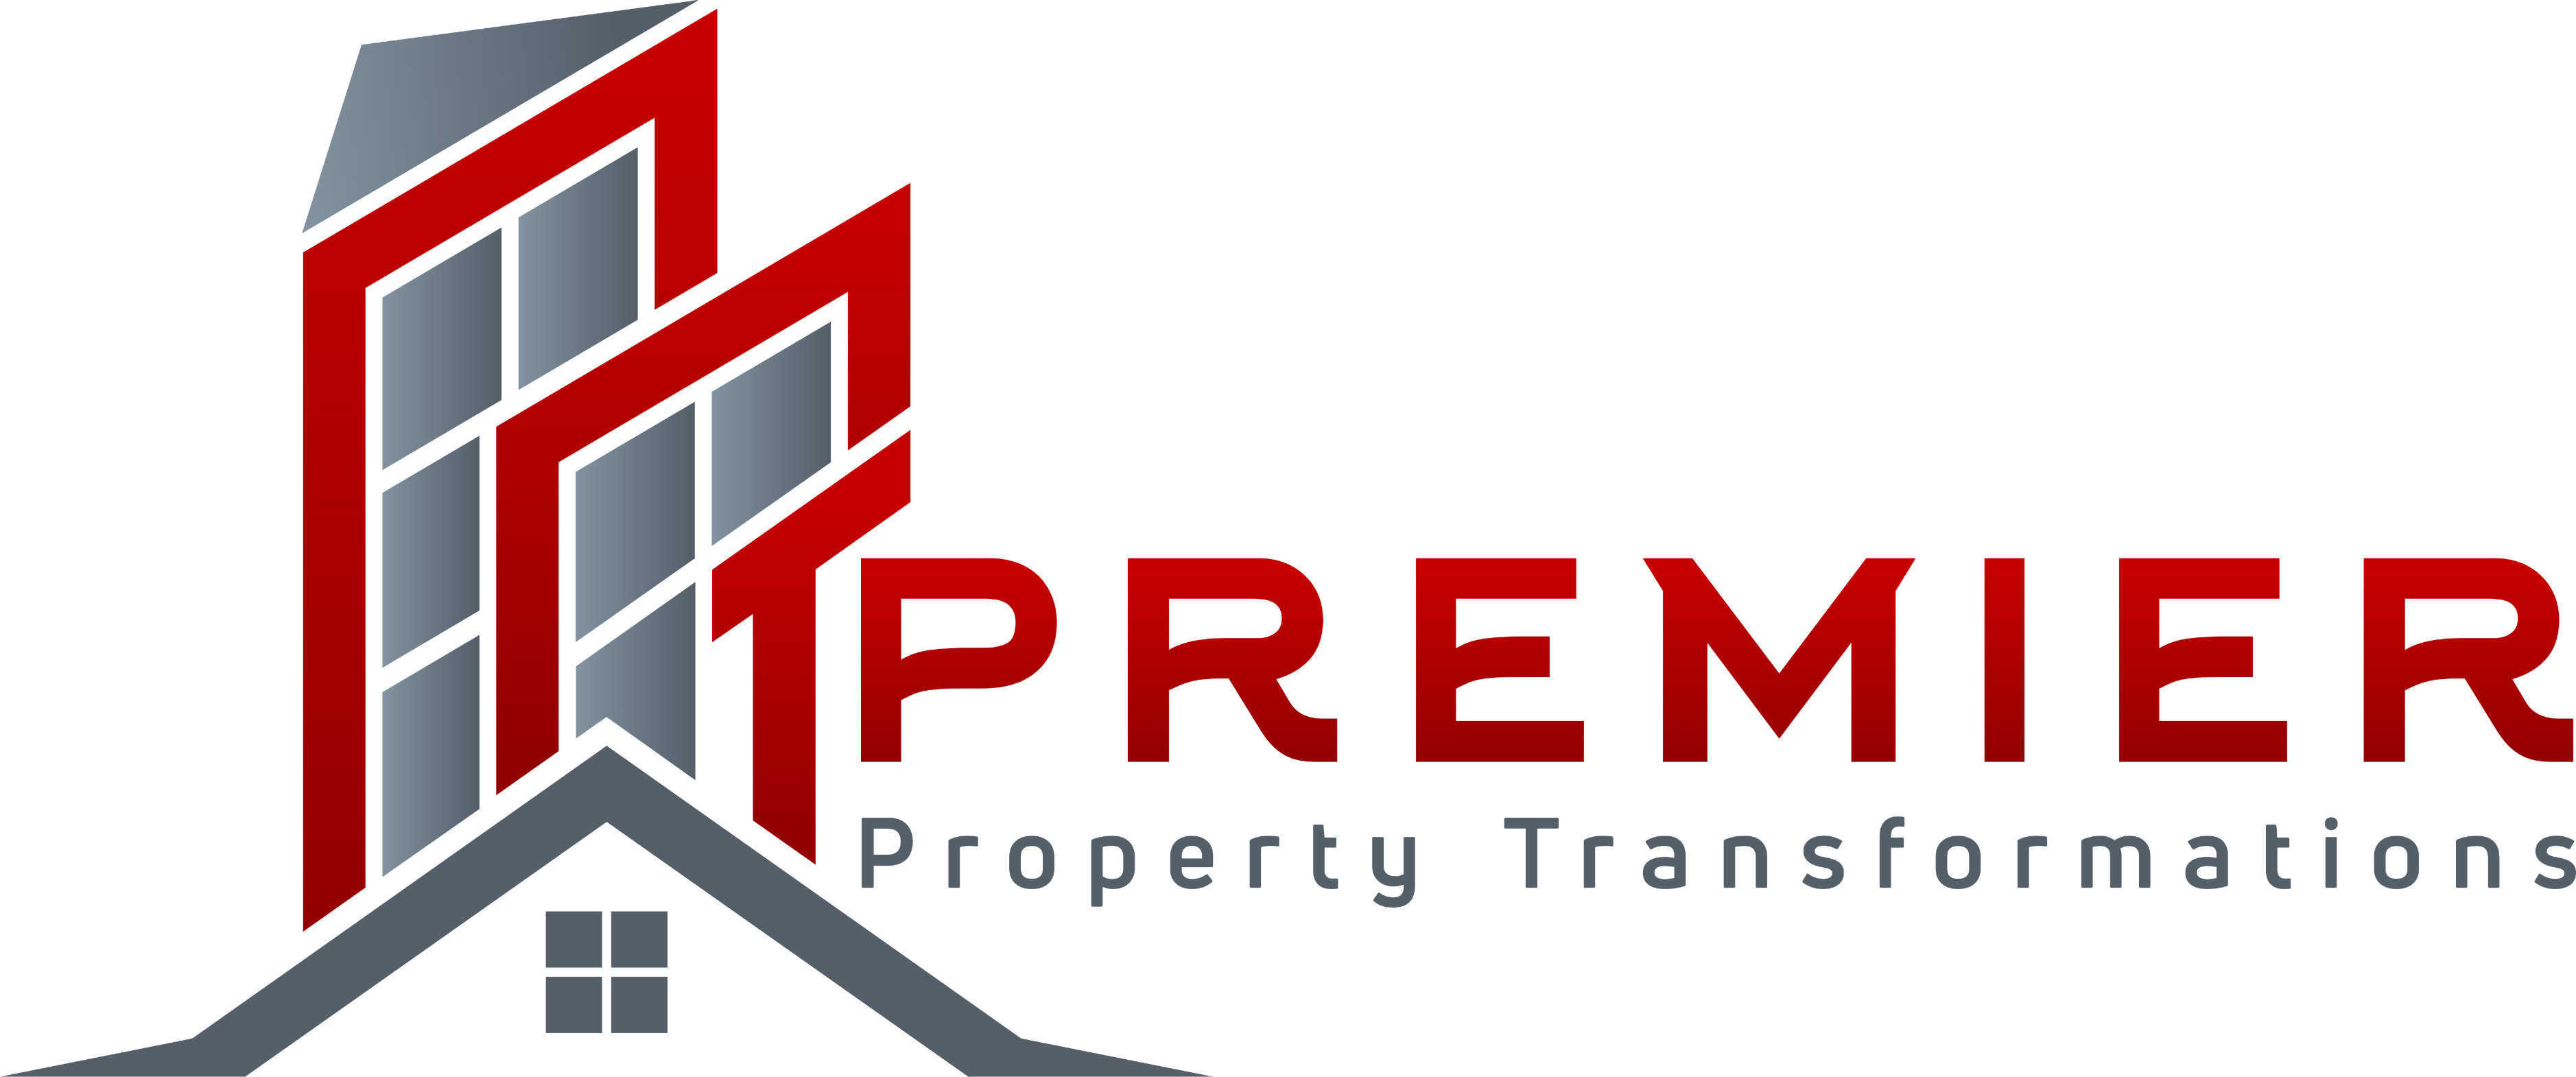 Premier Property Transformations